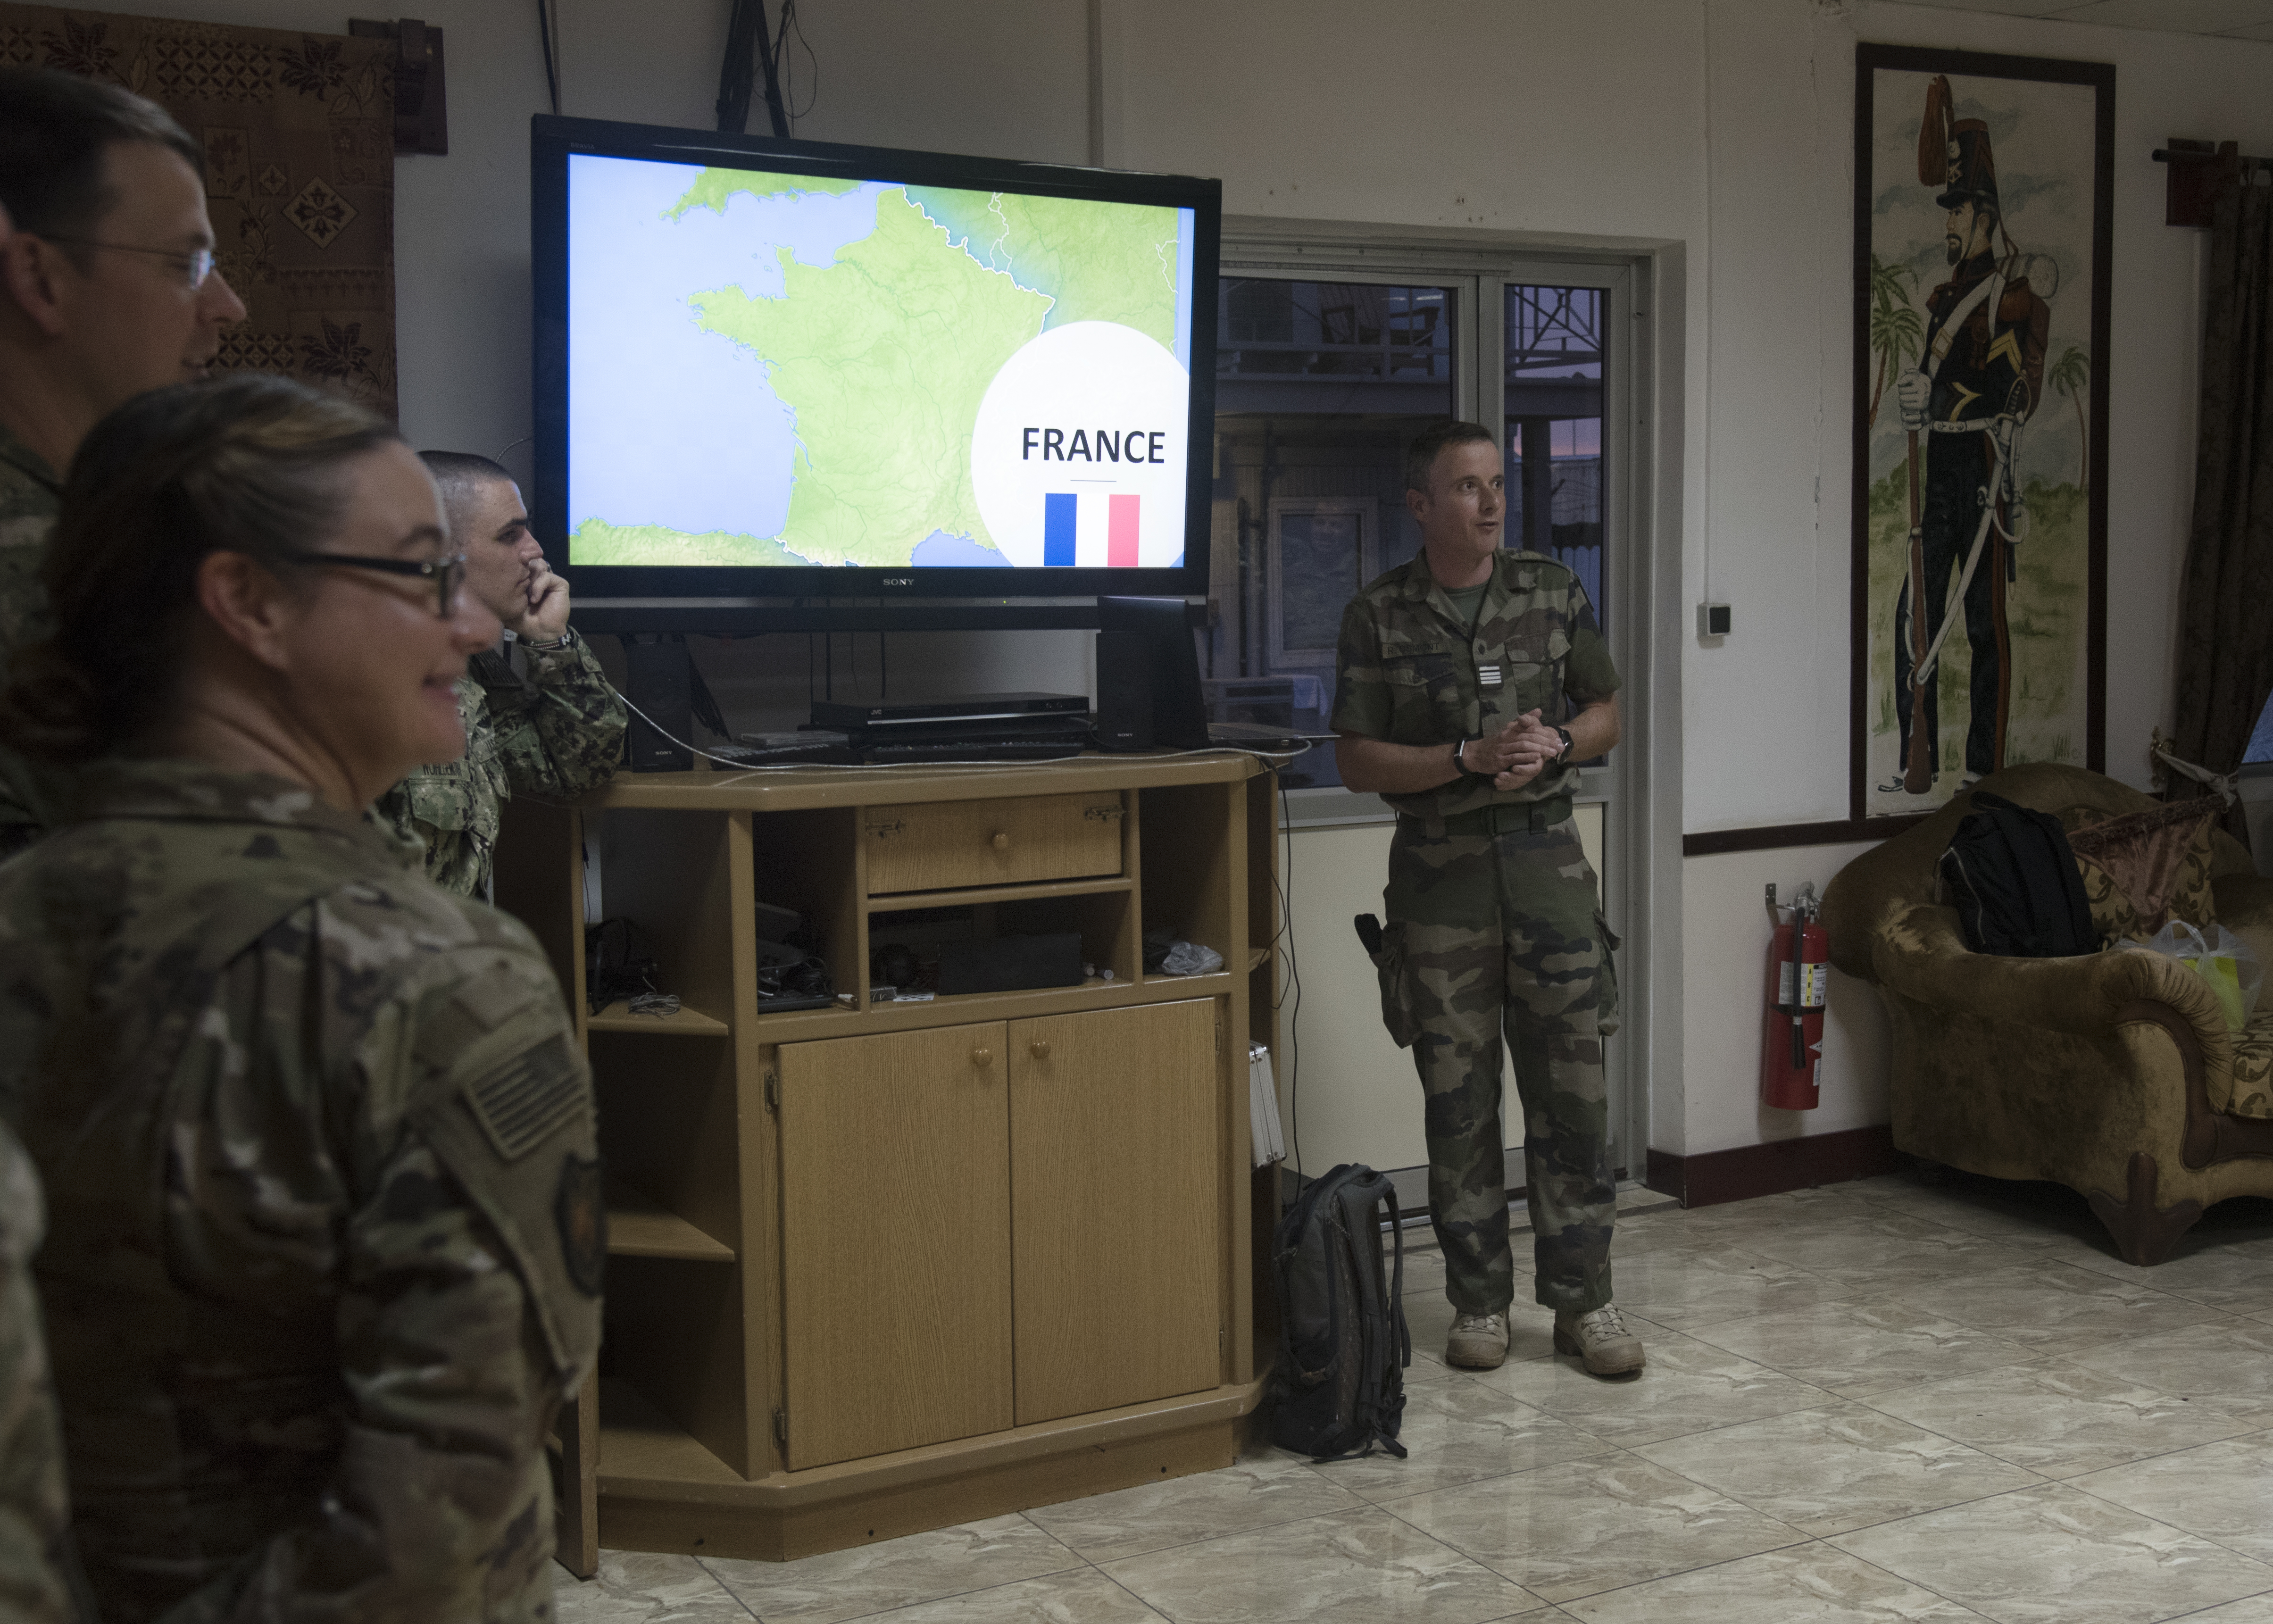 French army Maj. Romain, a foreign liaison officer assigned to Combined Joint Task Force-Horn of Africa (CJTF-HOA), briefs multinational military partners about his country during a CJTF-HOA cultural exchange at Camp Lemonnier, Djibouti, May 22, 2019. CJTF-HOA holds monthly exchanges with multinational military partners affiliated with Camp Lemonnier to strengthen alliances and increase understanding within the combined joint military environment. (U.S. Air Force photo by Staff Sgt. Kirsten Brandes)